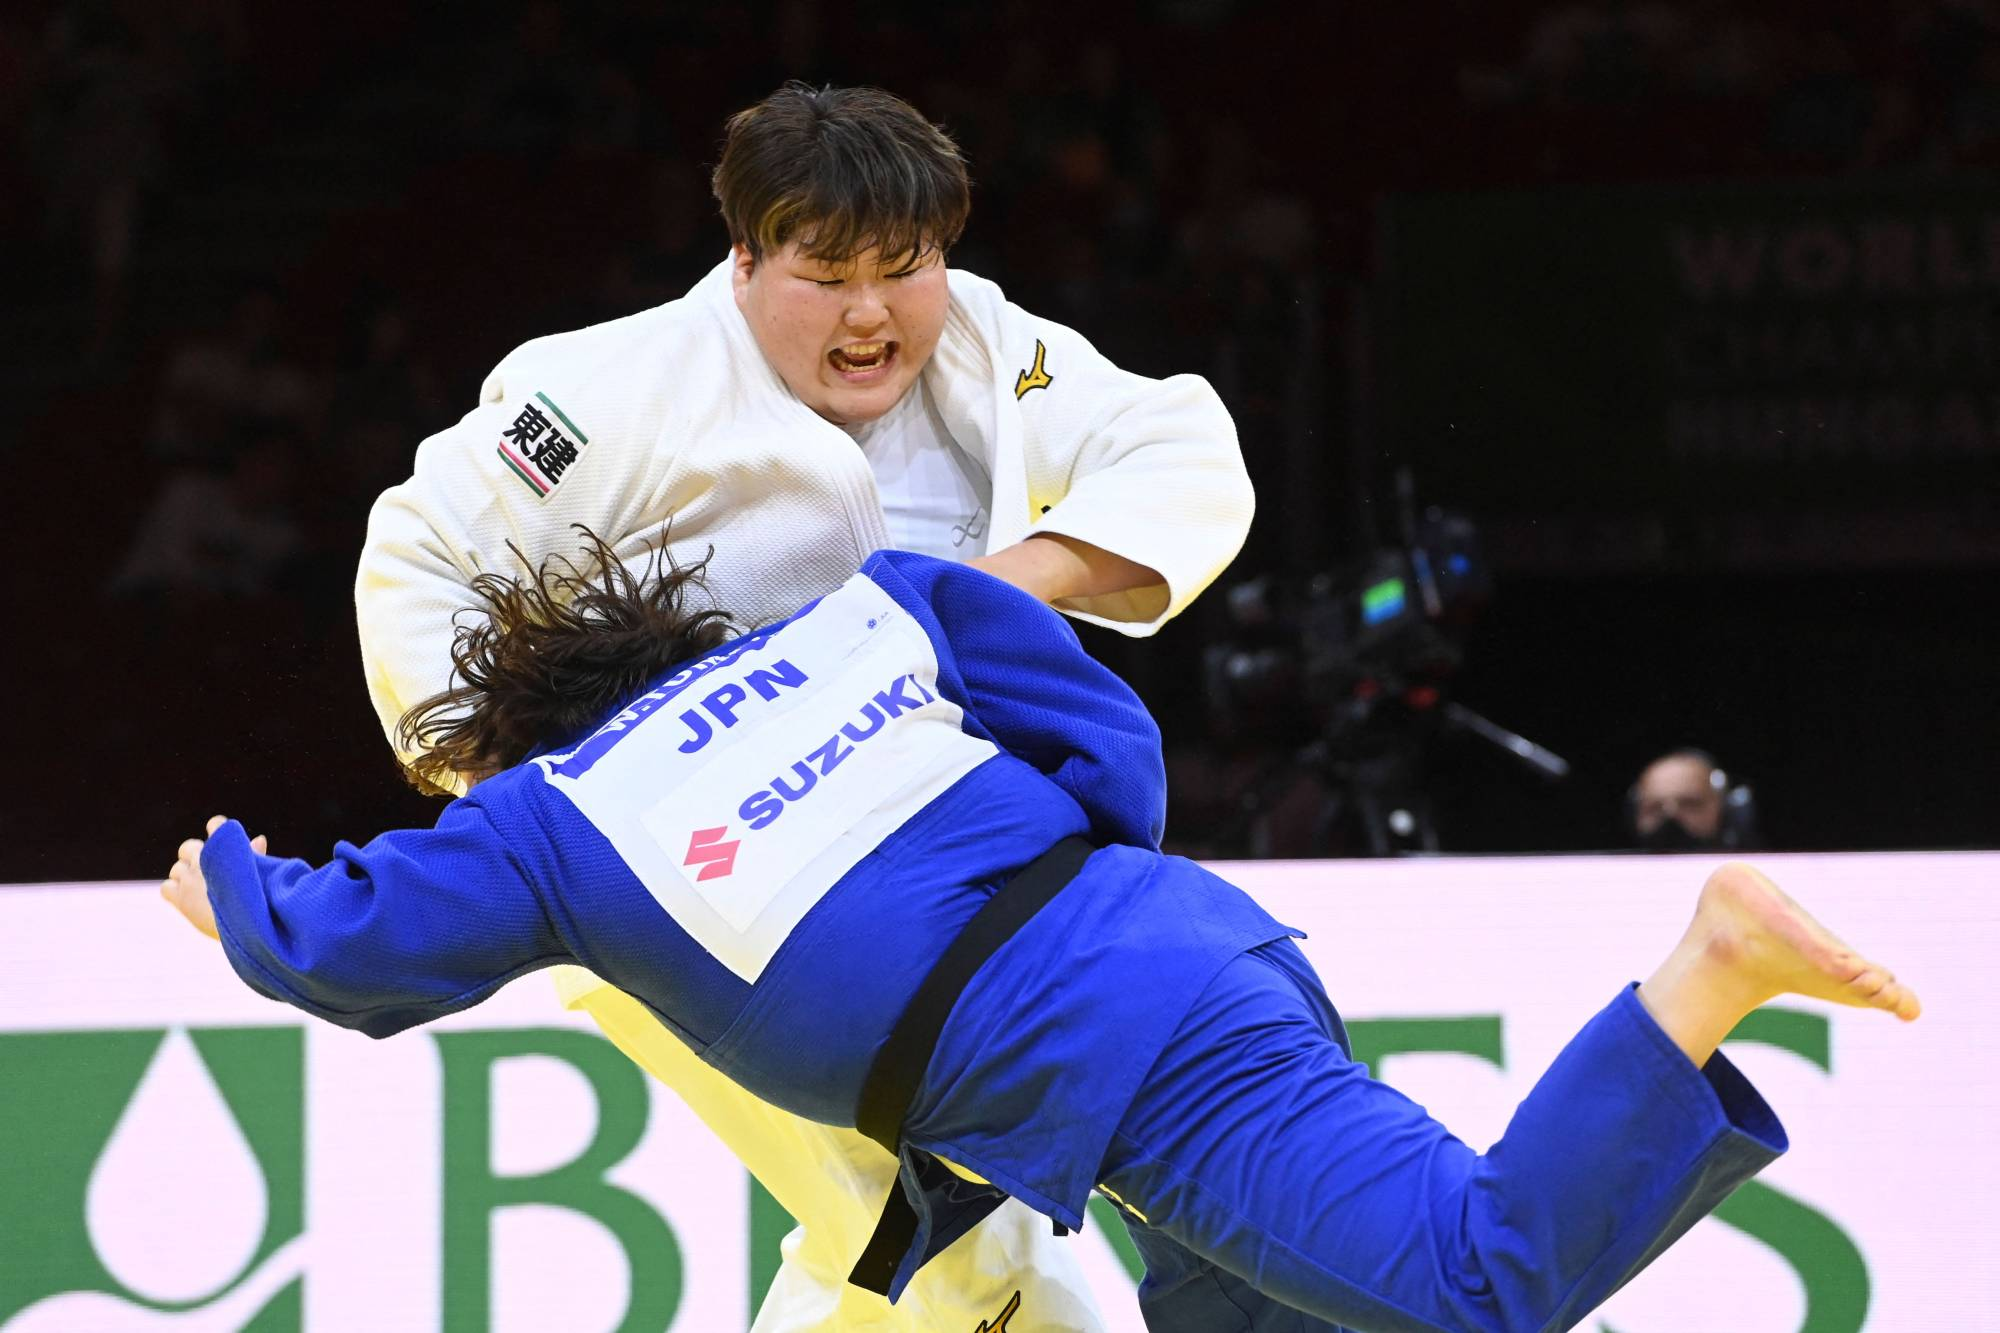 Sara Asahina (white) fights Wakaba Tomita in the women's over-78-kg category at the 2021 Judo World Championships on Saturday in Budapest. | AFP-JIJI